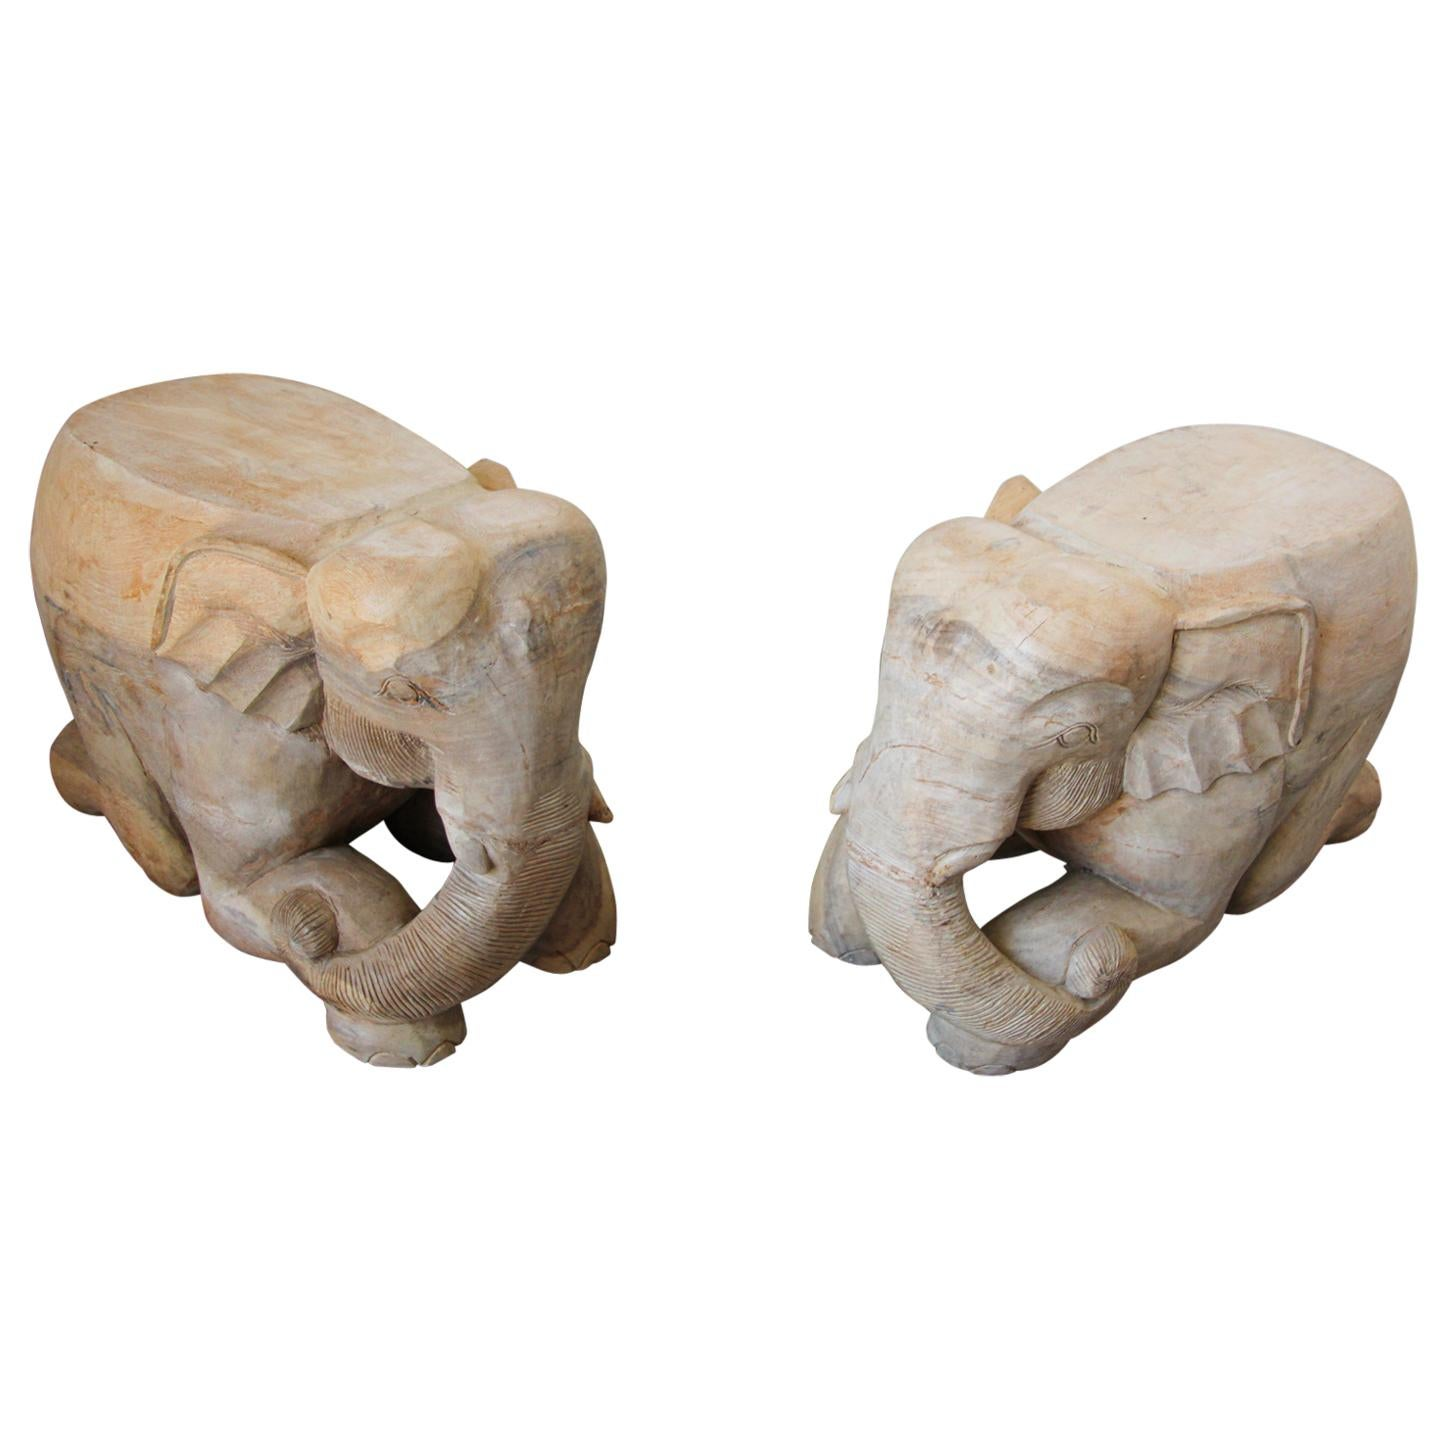 Hand-Carved Vintage Asian Elephant Wooden Side Table Stools